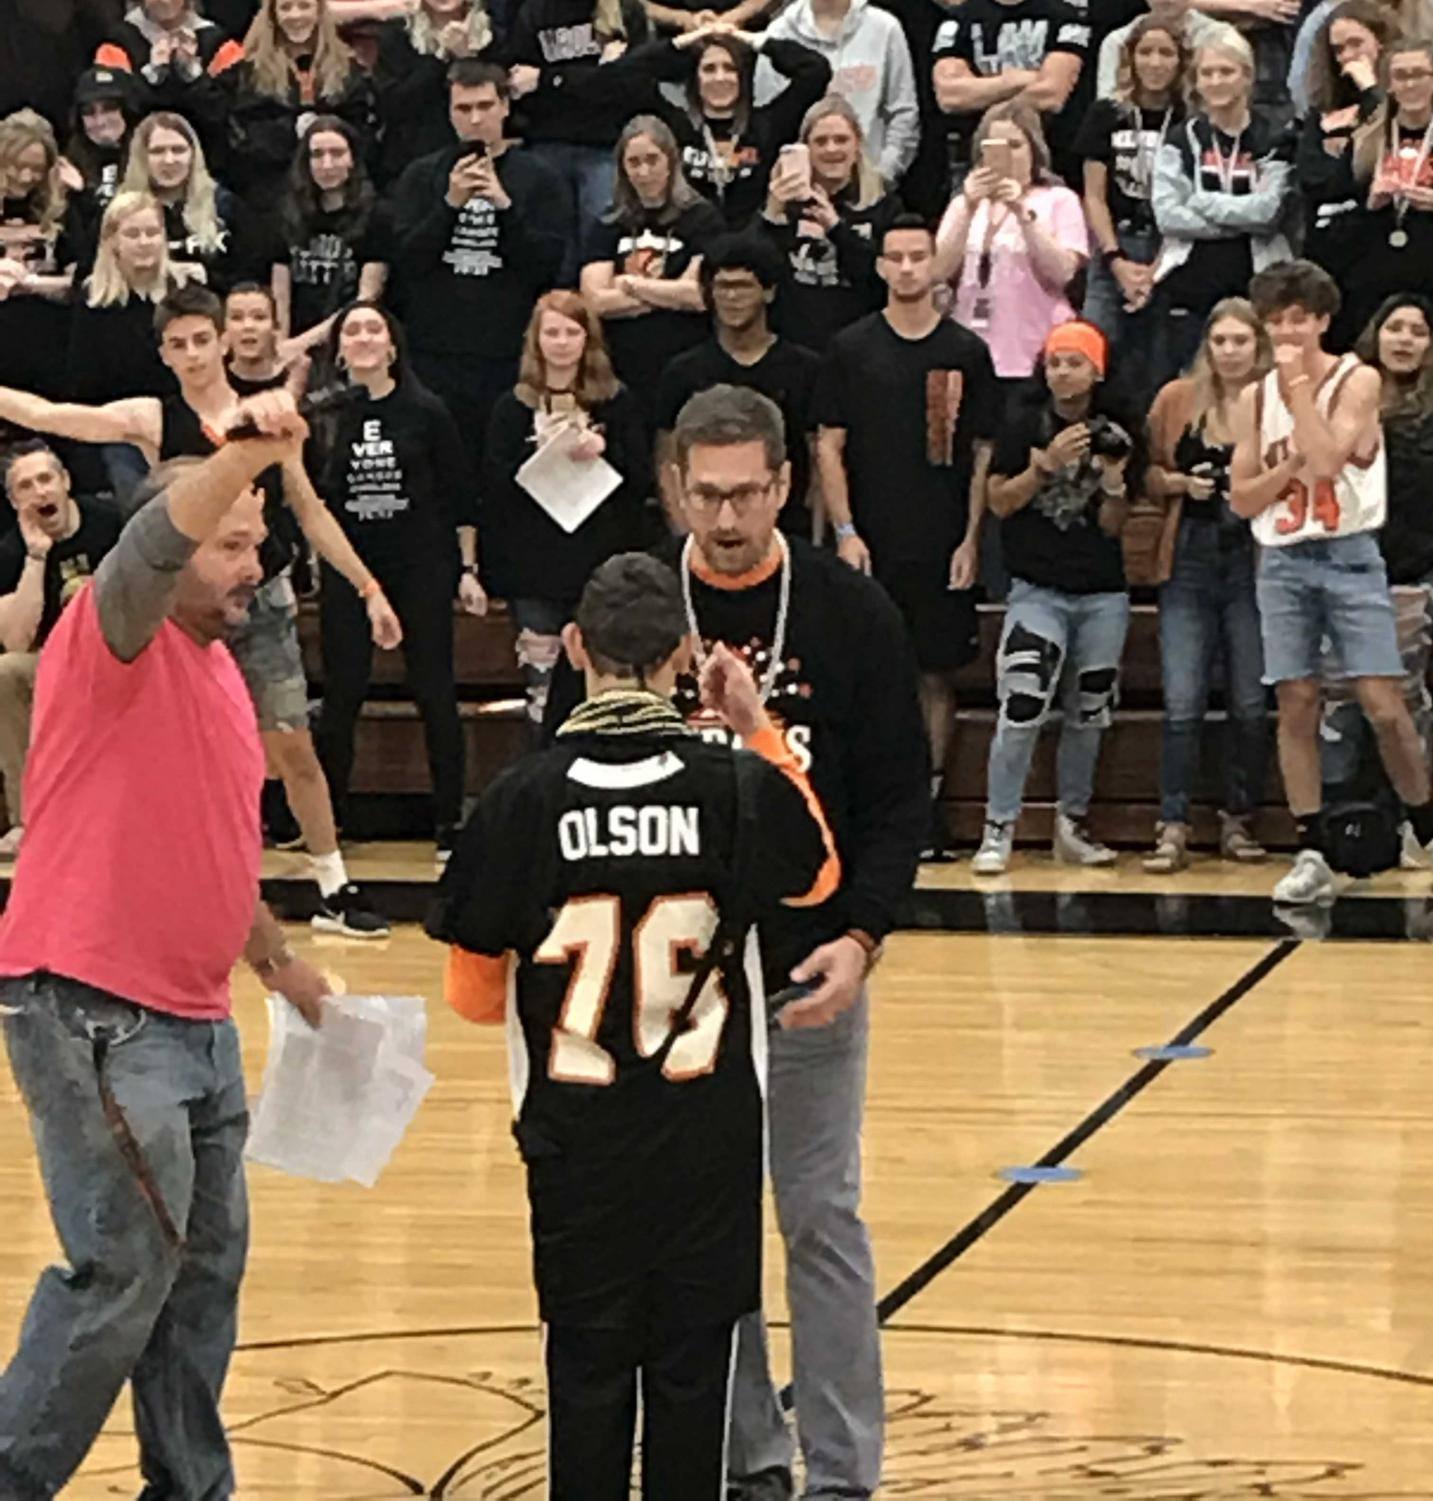 Alex Olsen defeats Principal Bryan Zwemke during the rock-paper-scissors competition at Central Campus during the Homecoming assembly.